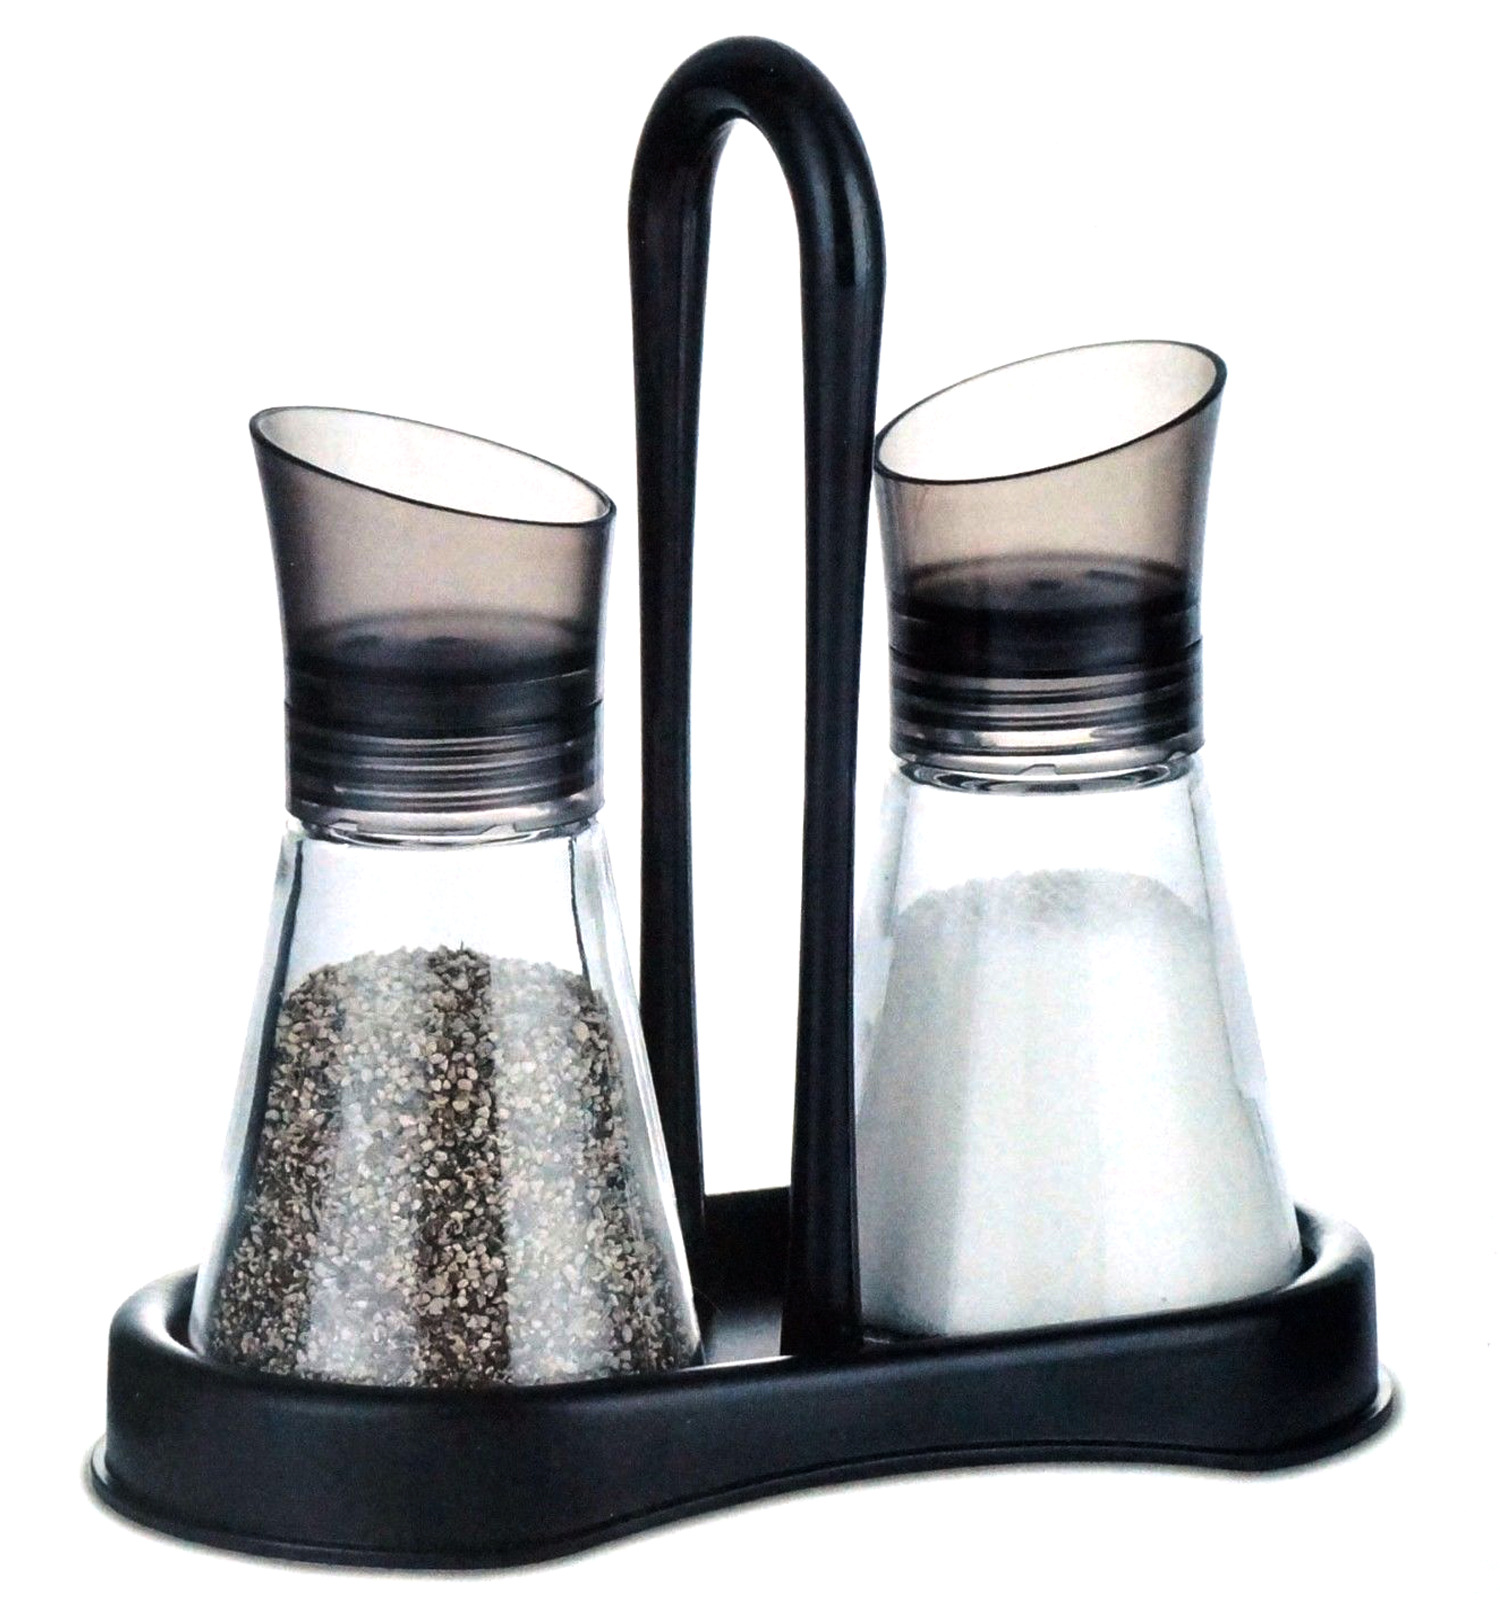 Salt and Pepper Glass Shakers ABS Plastic Lid and Stand - Sugar / Spice Shaker Adjustable Holes